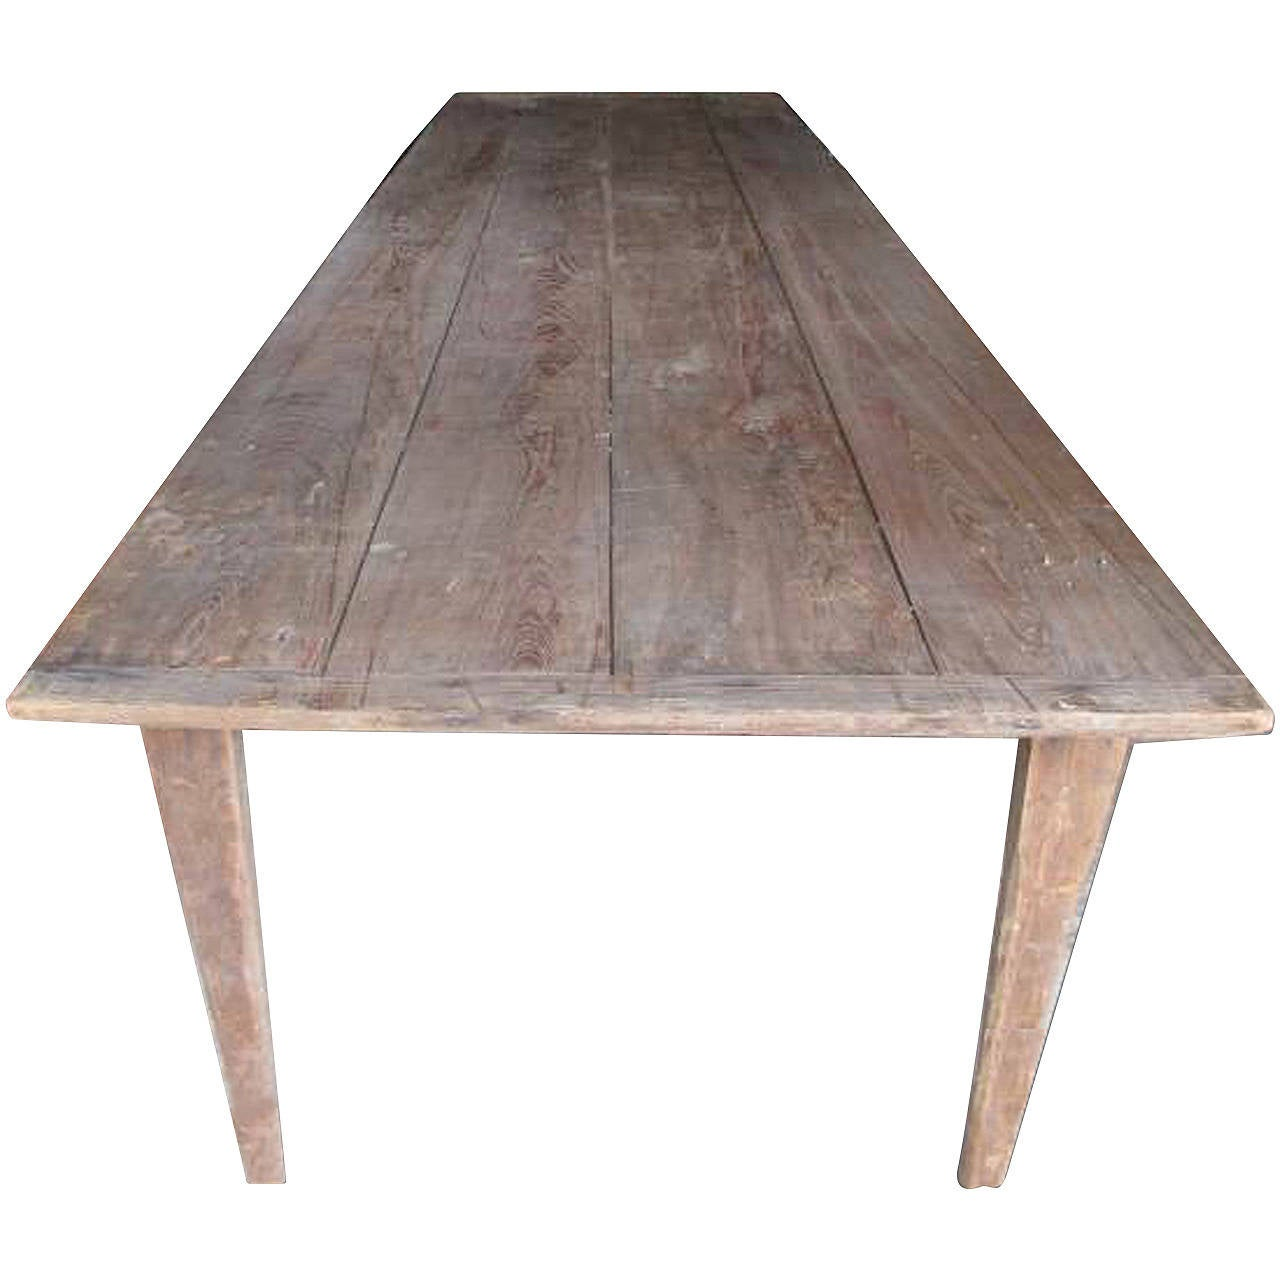 antique folding harvest table 10 ft length at 1stdibs